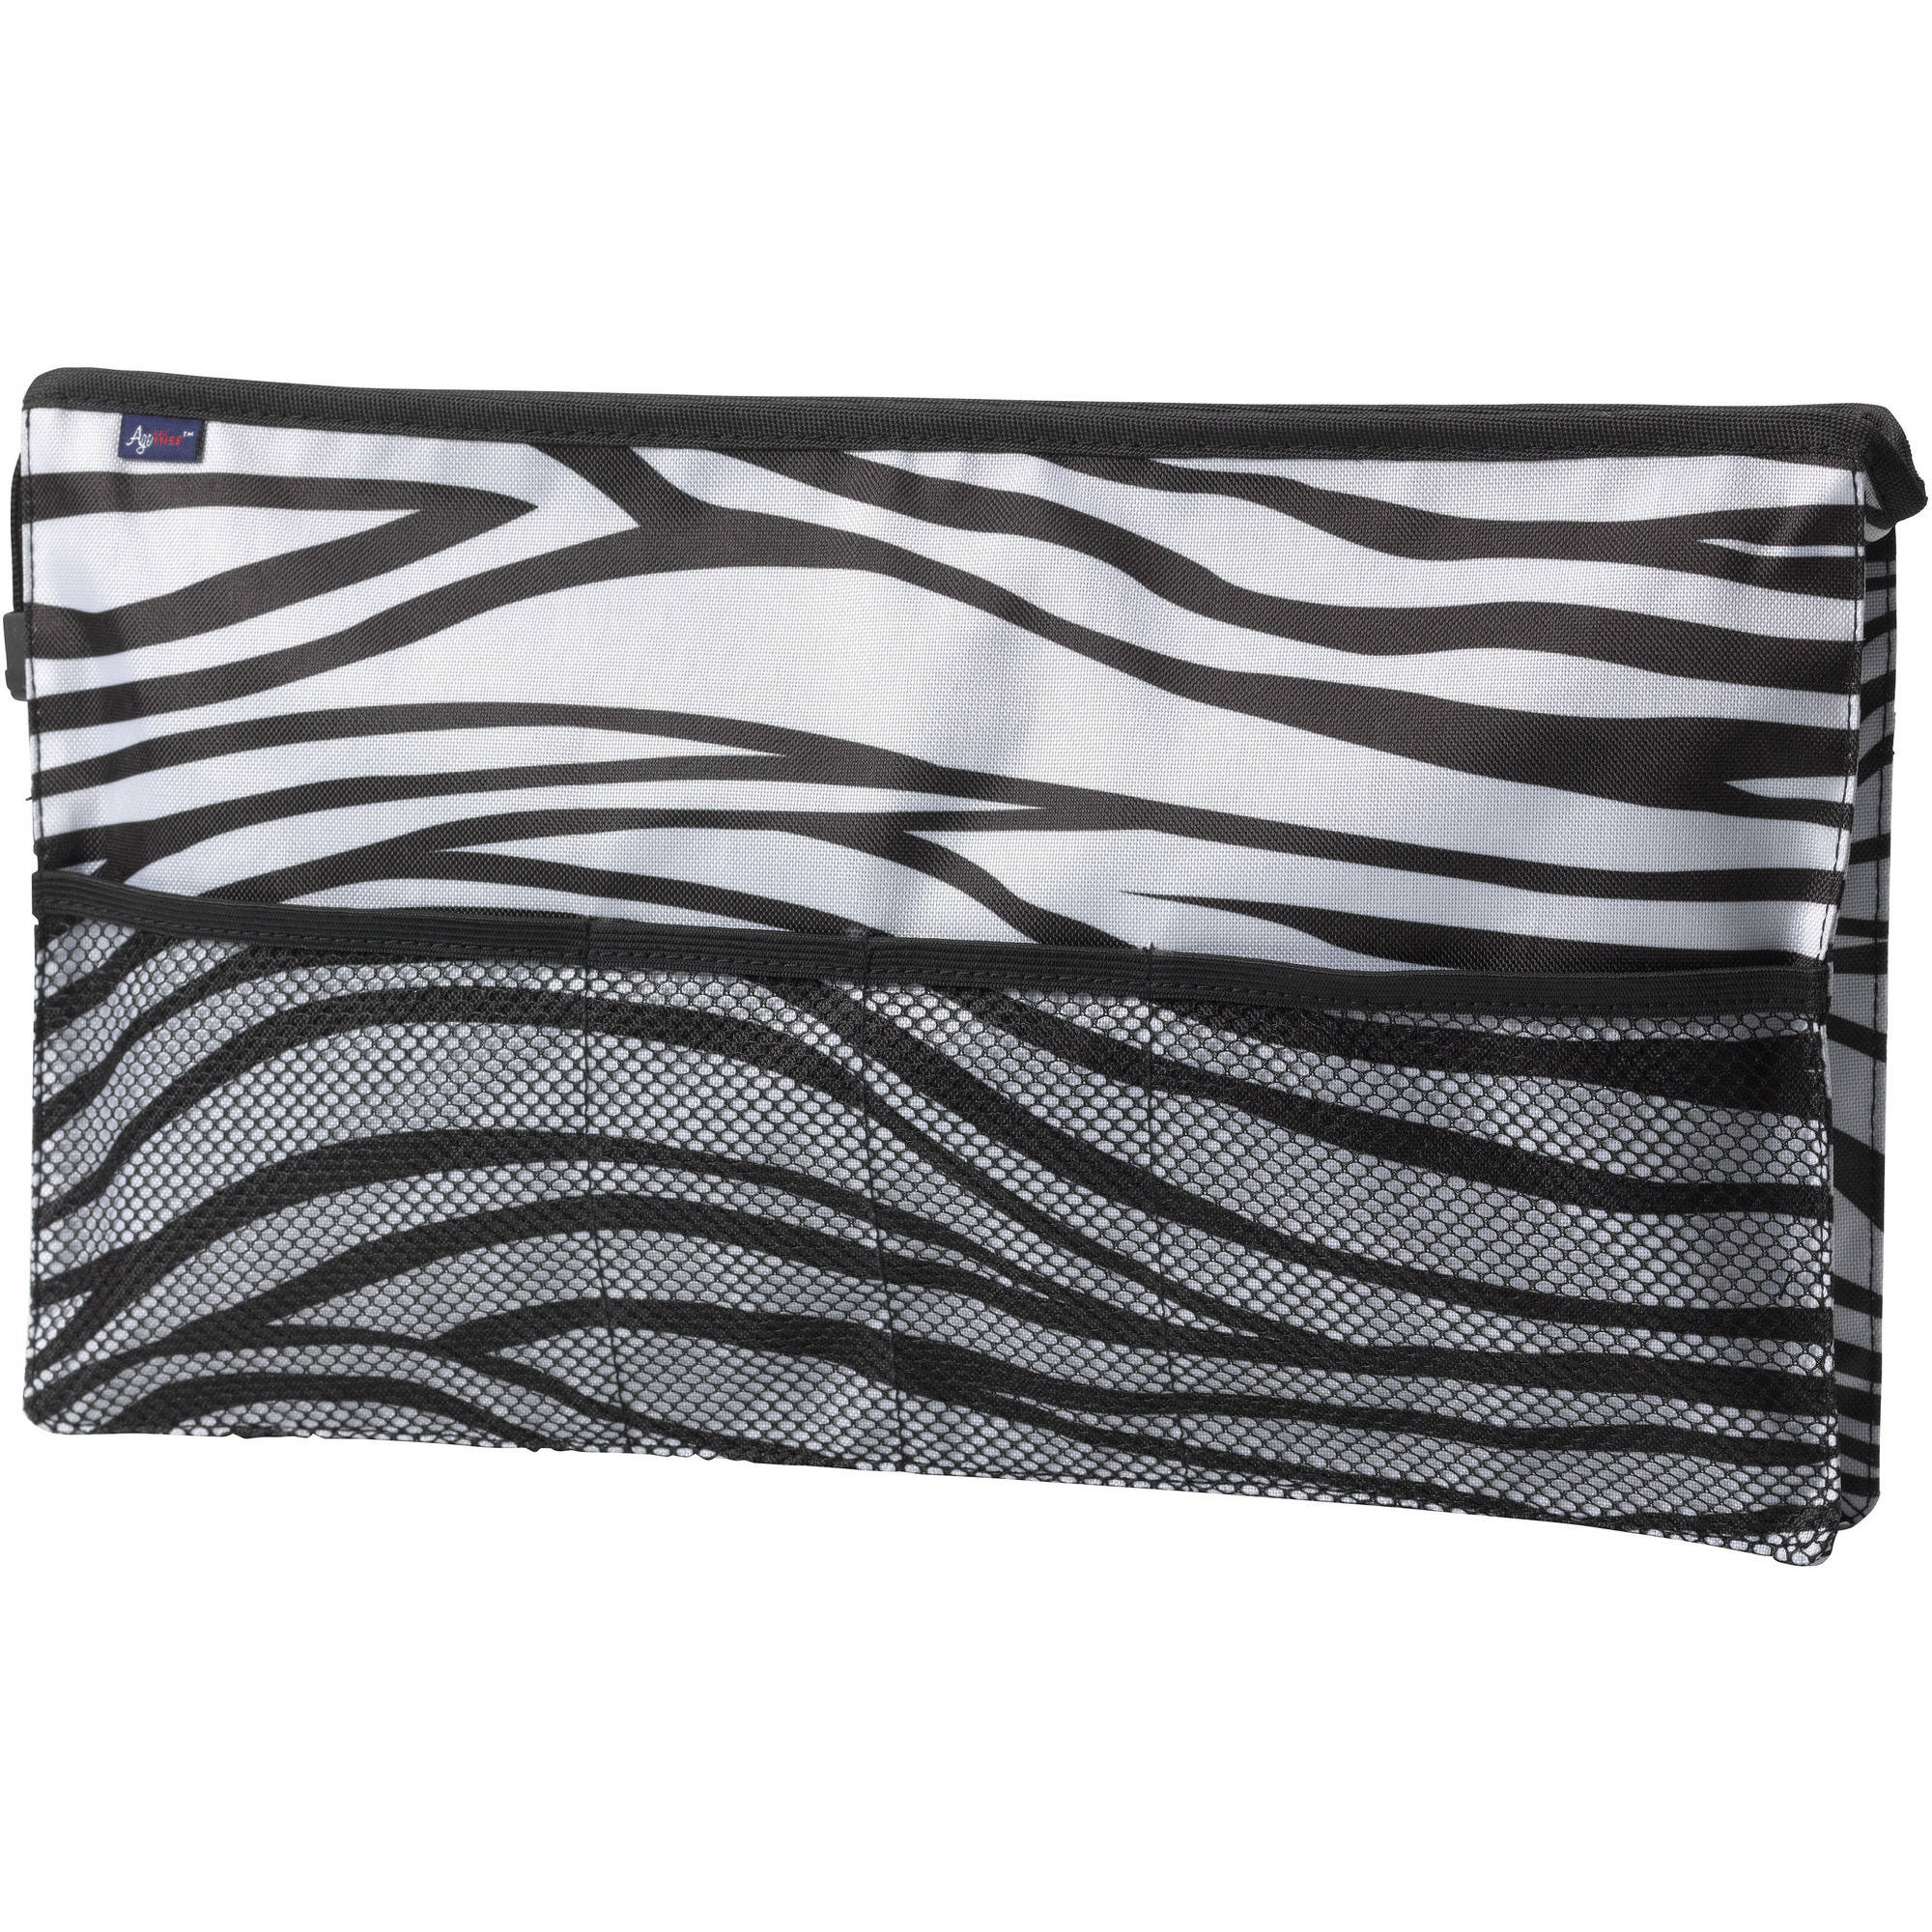 Drive Medical AgeWise Walker Rollator Front Organizer with Mesh, Zebra